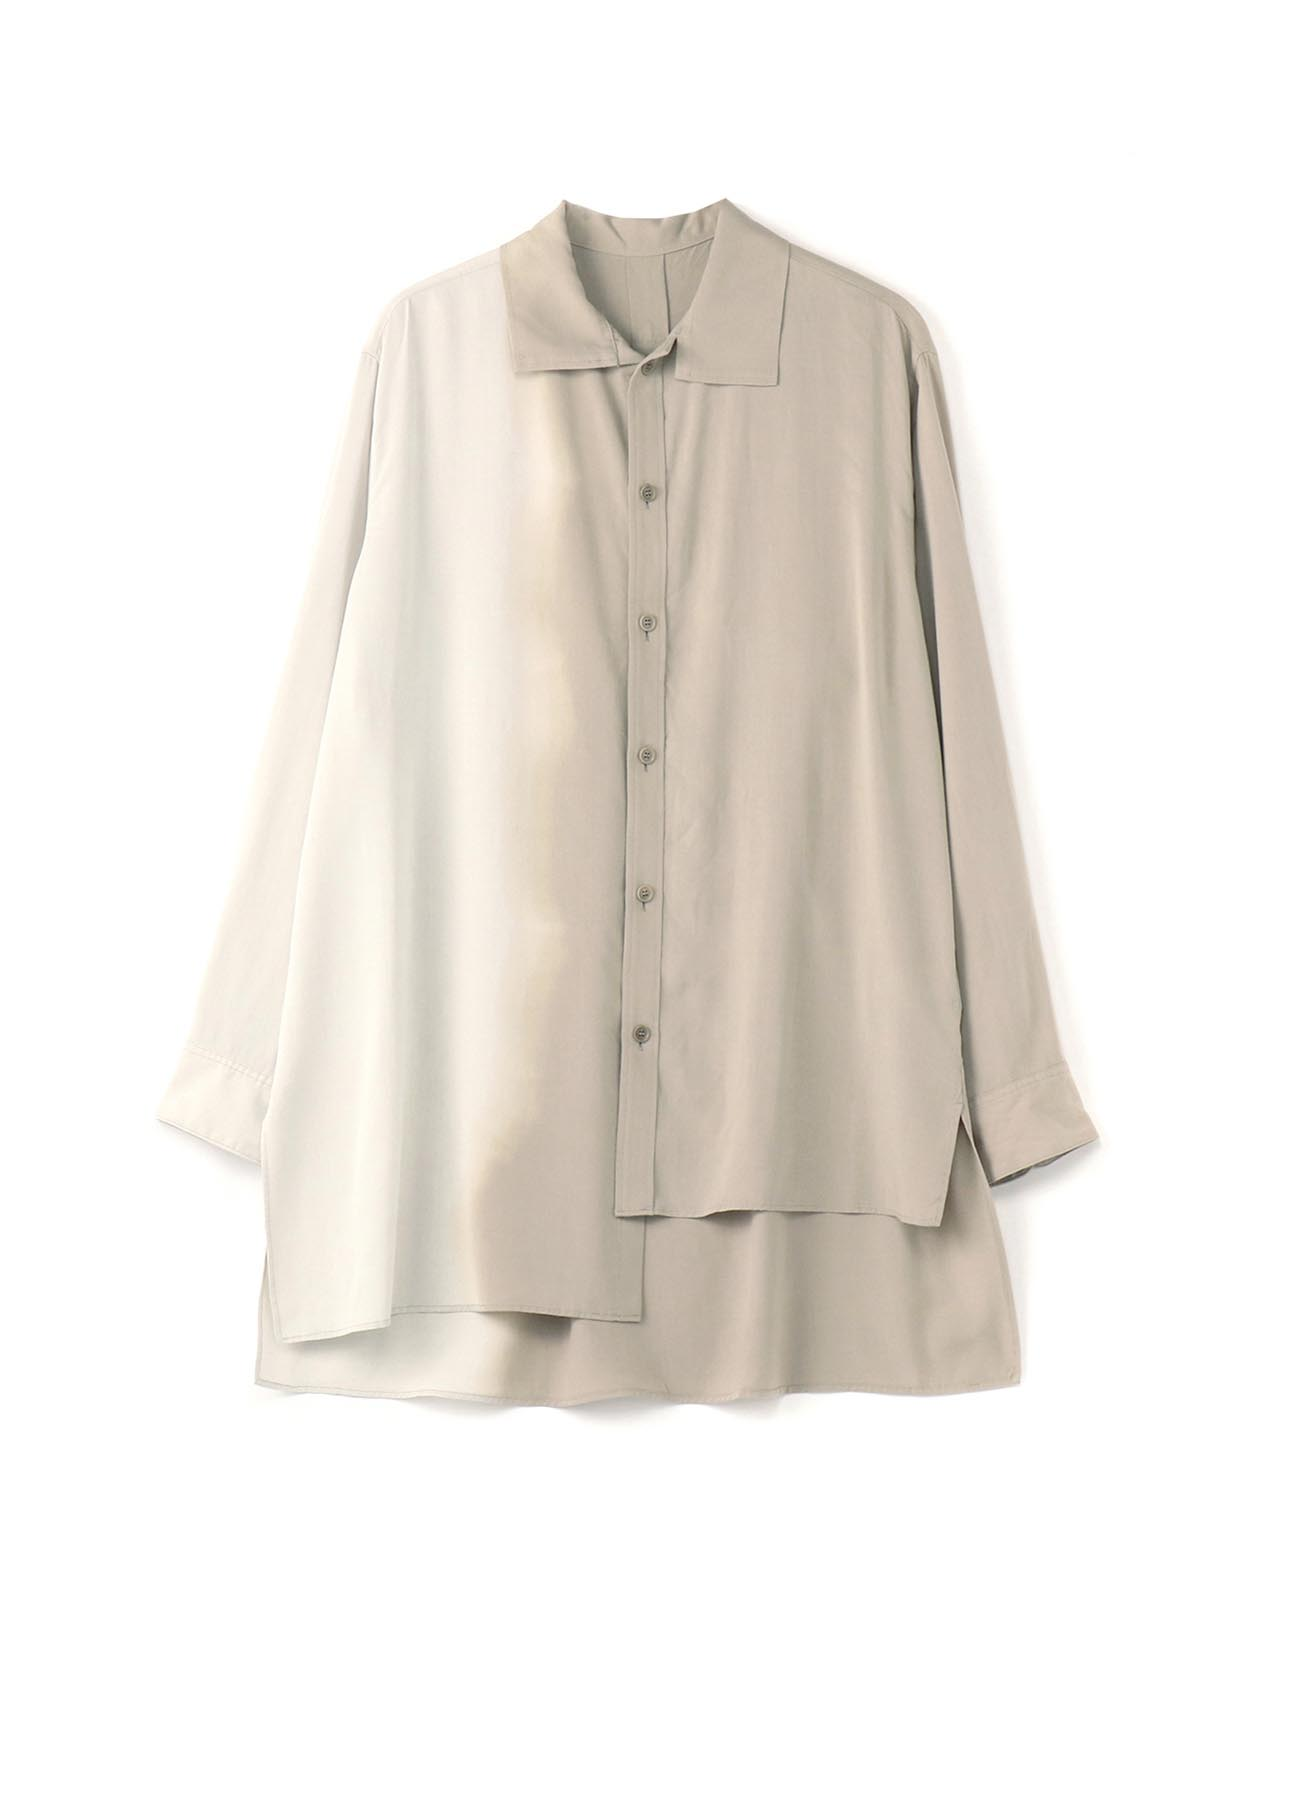 Ry/Pe VENUS TWILL GD DYE LEFT FLASH COLLAR BLOUSE